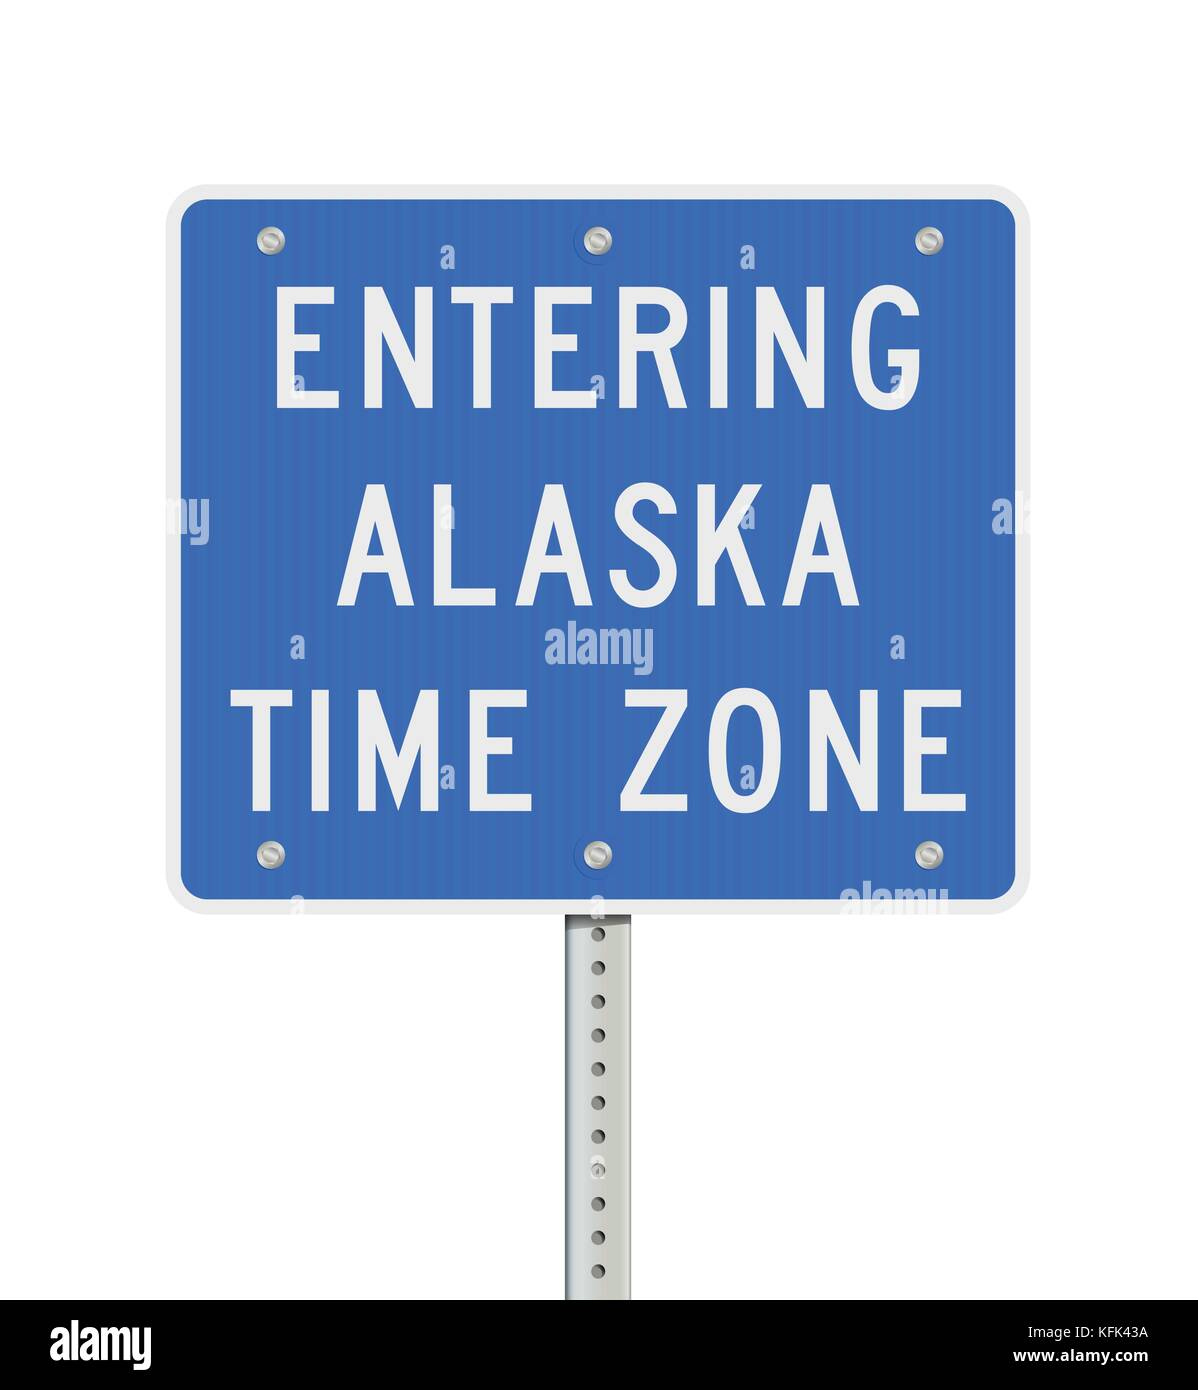 Time Zone Stock Photos & Time Zone Stock Images